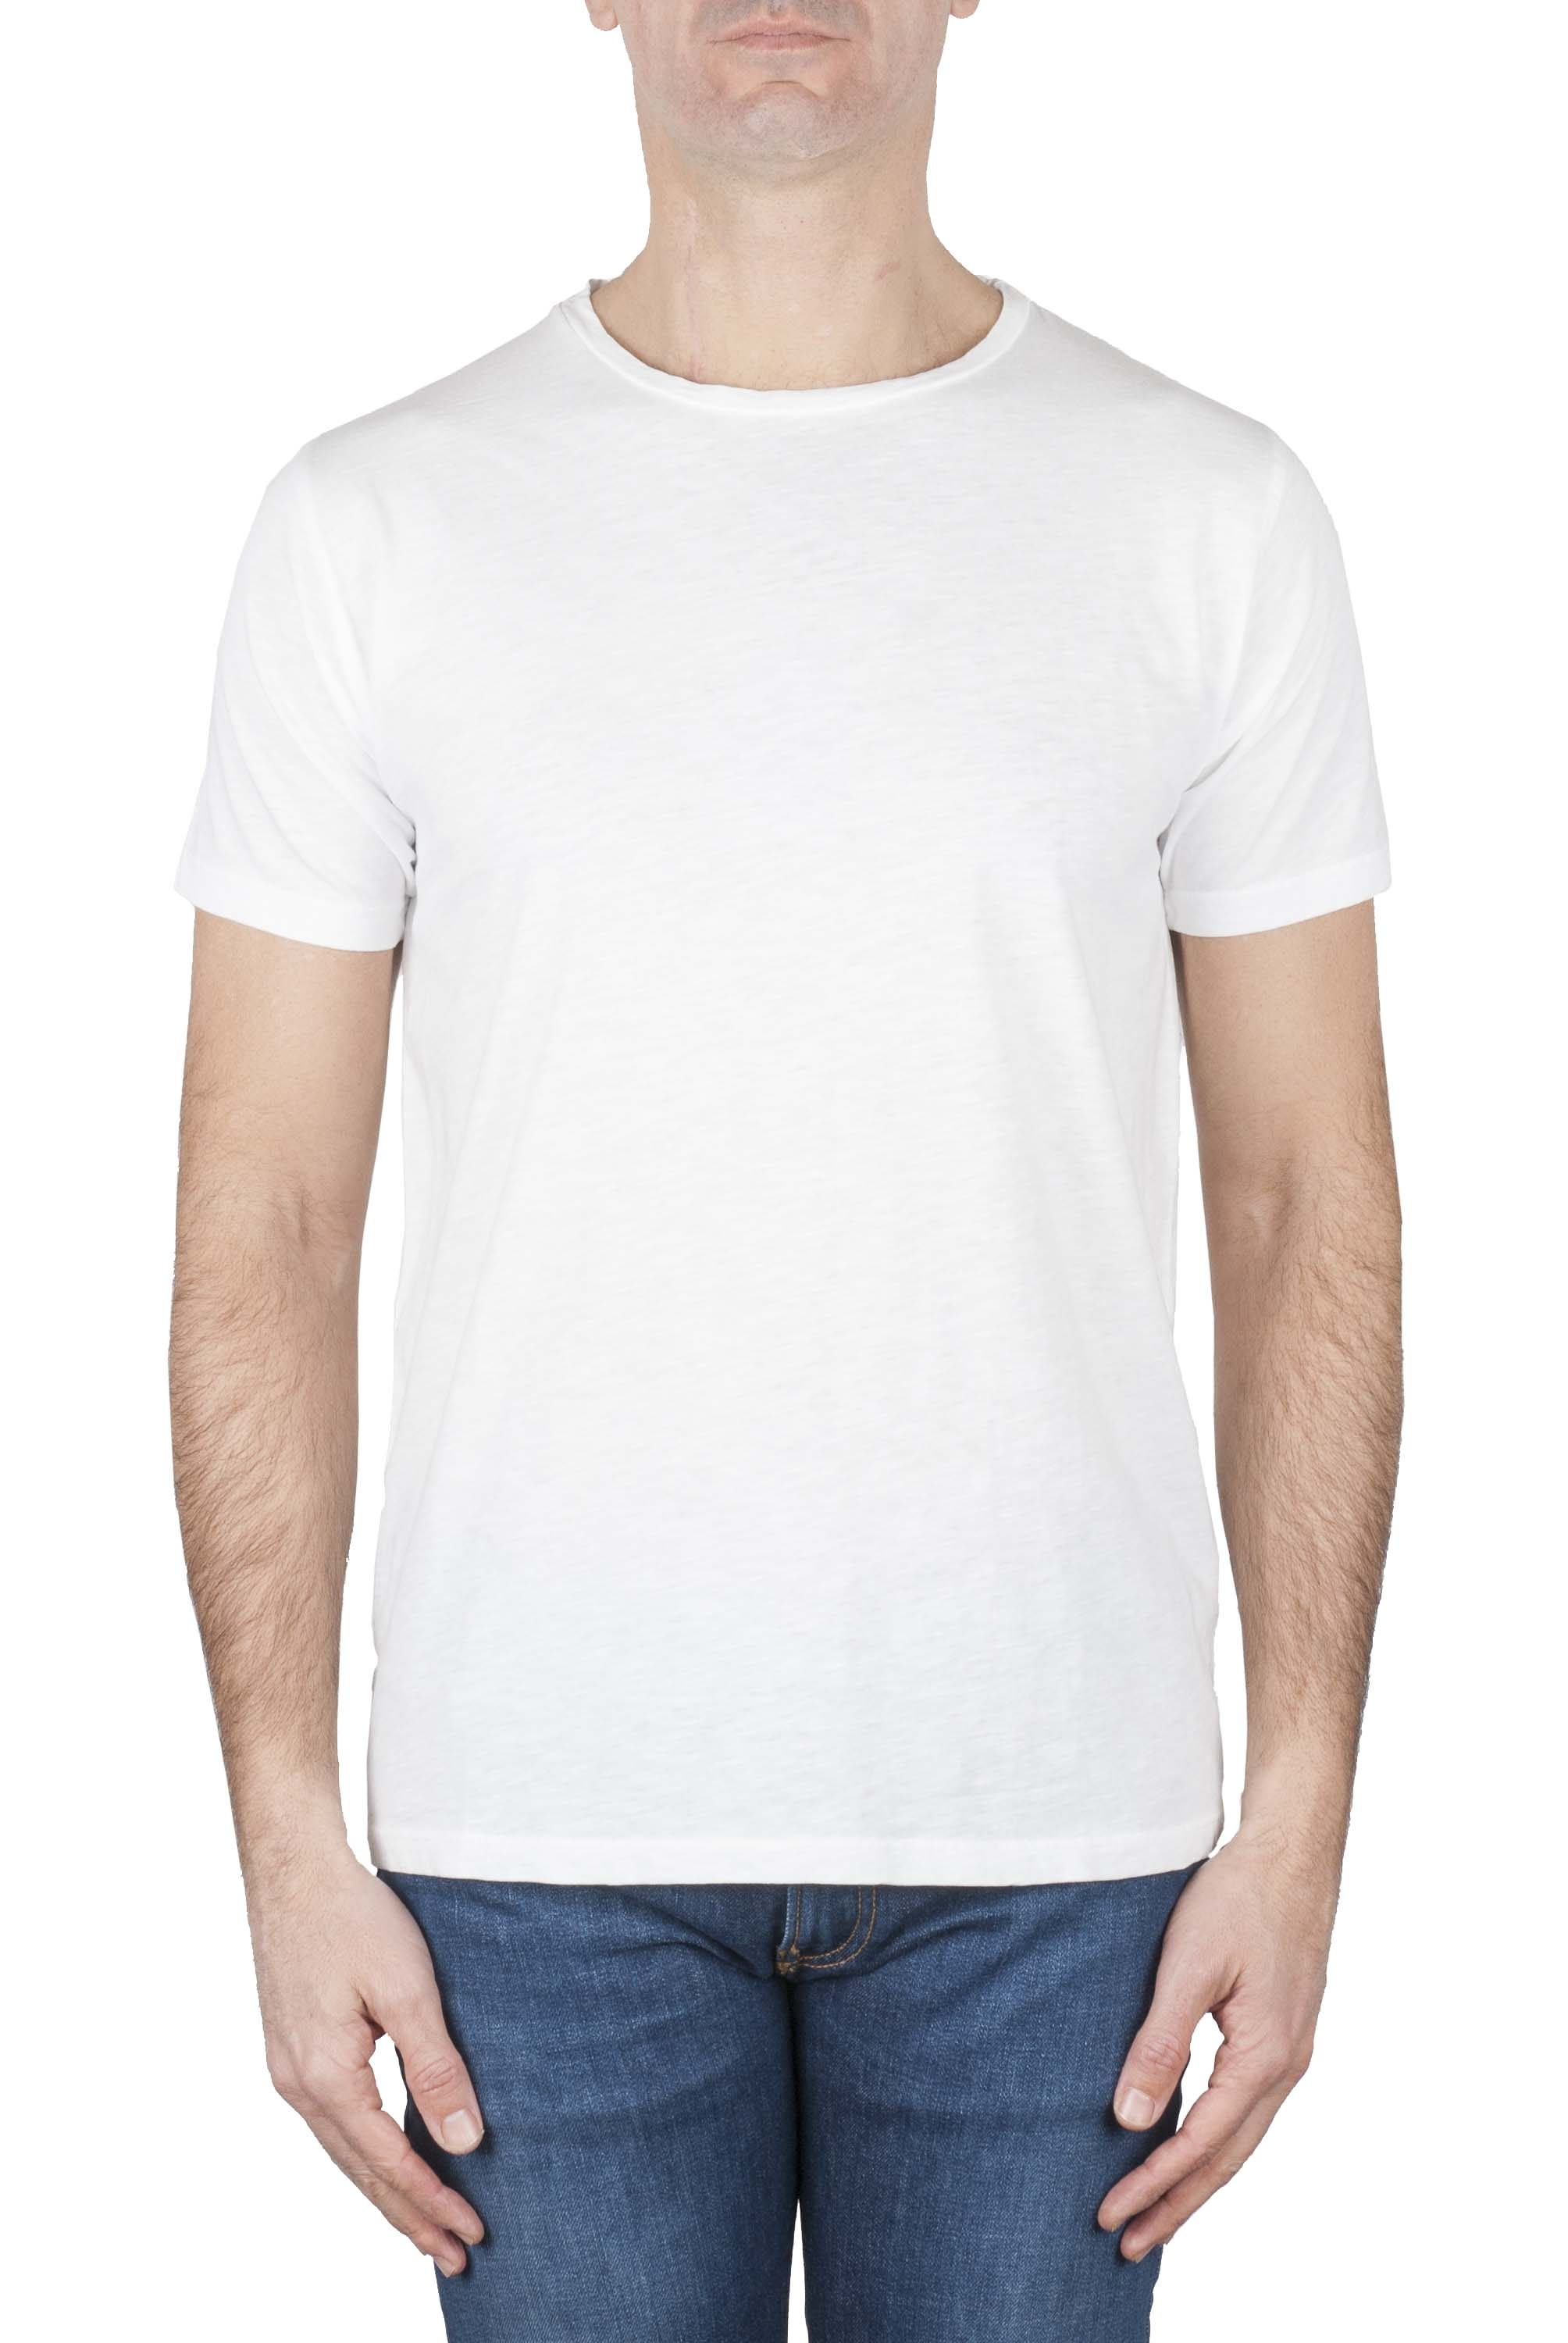 SBU 03072_2020AW Flamed cotton scoop neck t-shirt white 01